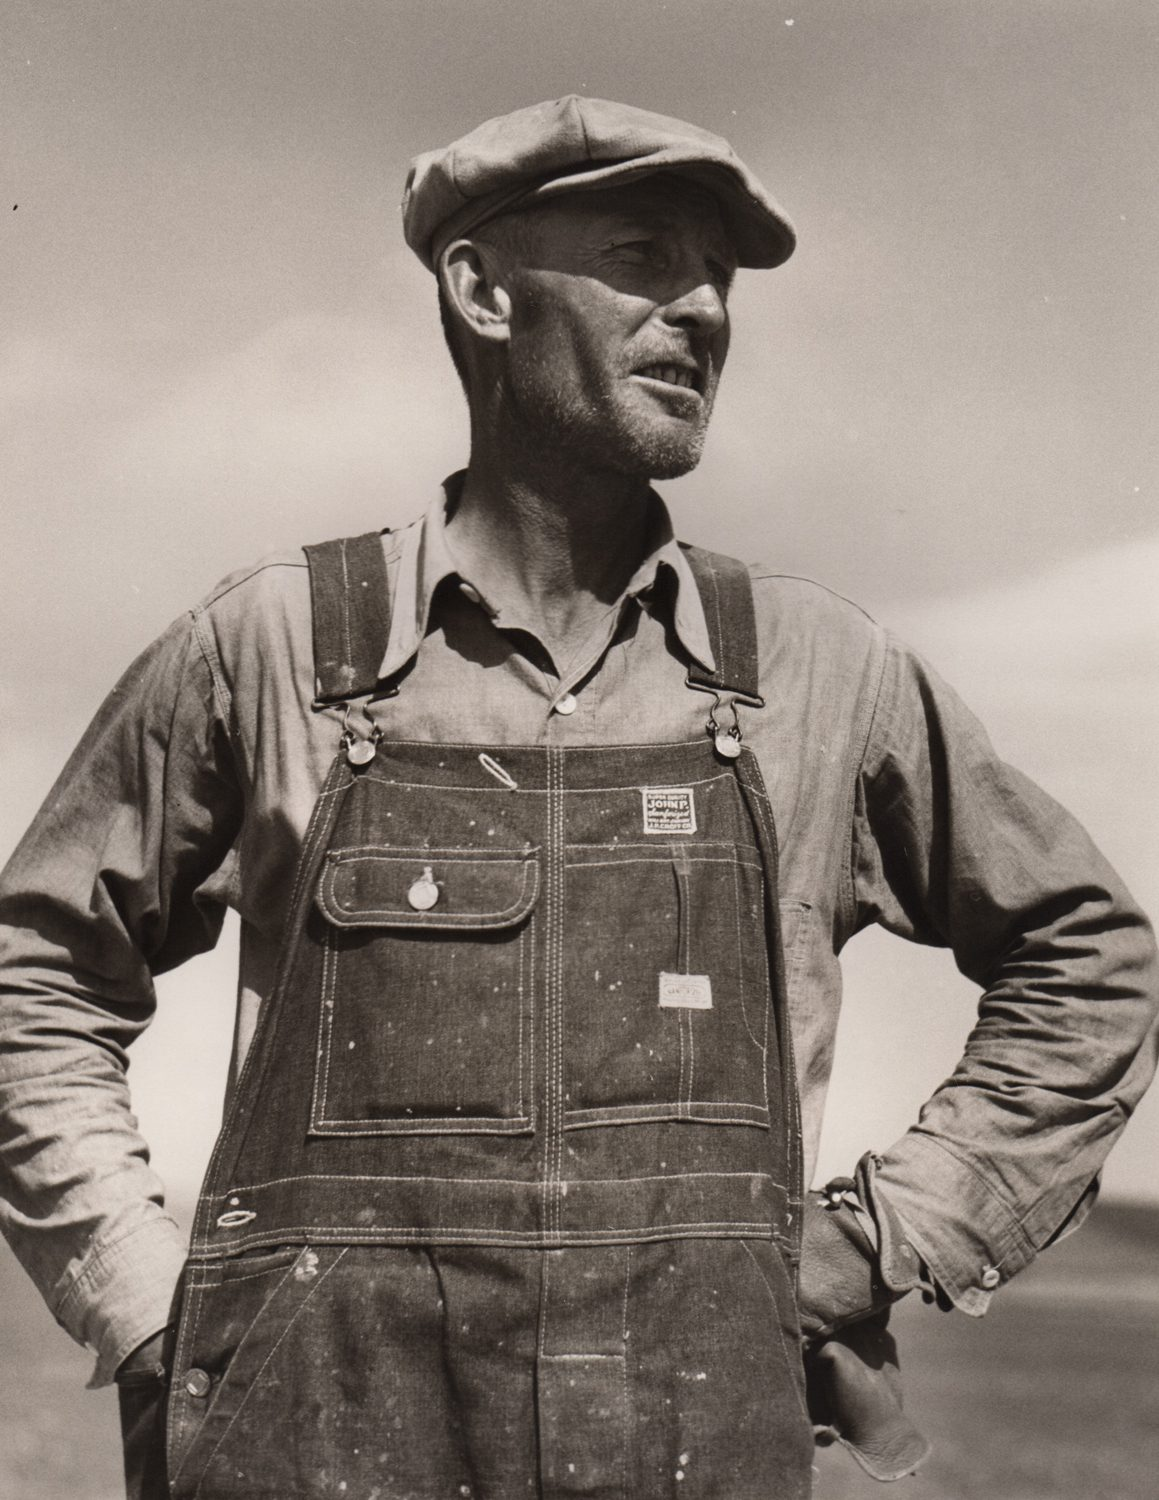 President of farmers cooperative, Loup City, Farmstead, Nebraska